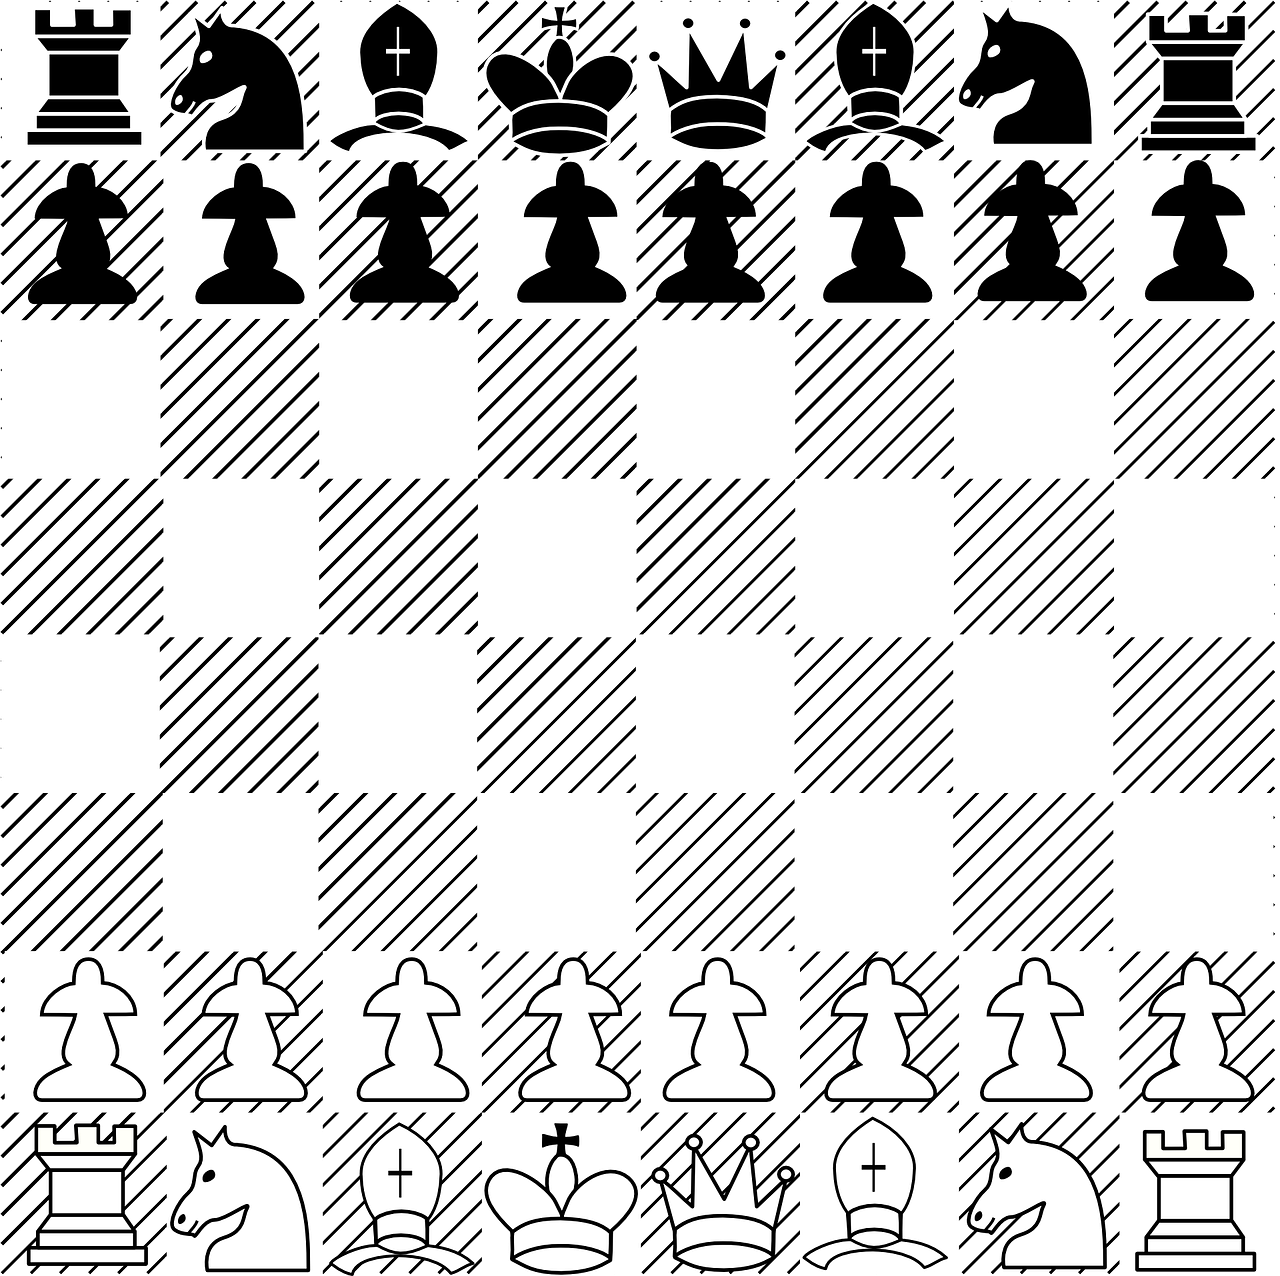 chess board game free photo